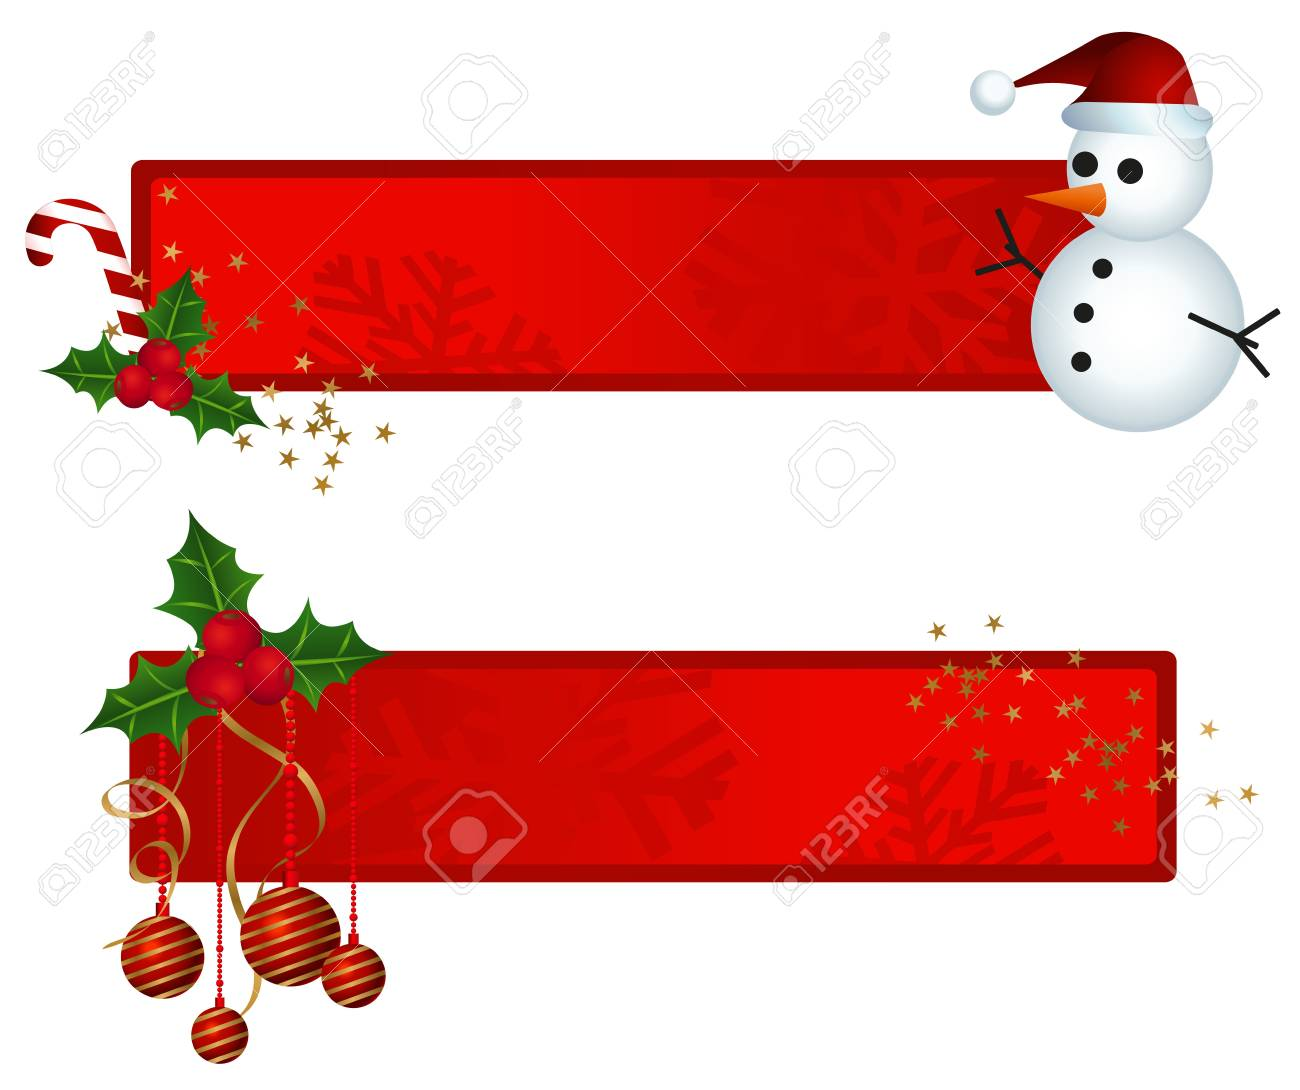 Banners with christmas ornaments and snowman illustration Stock Vector - 11648370